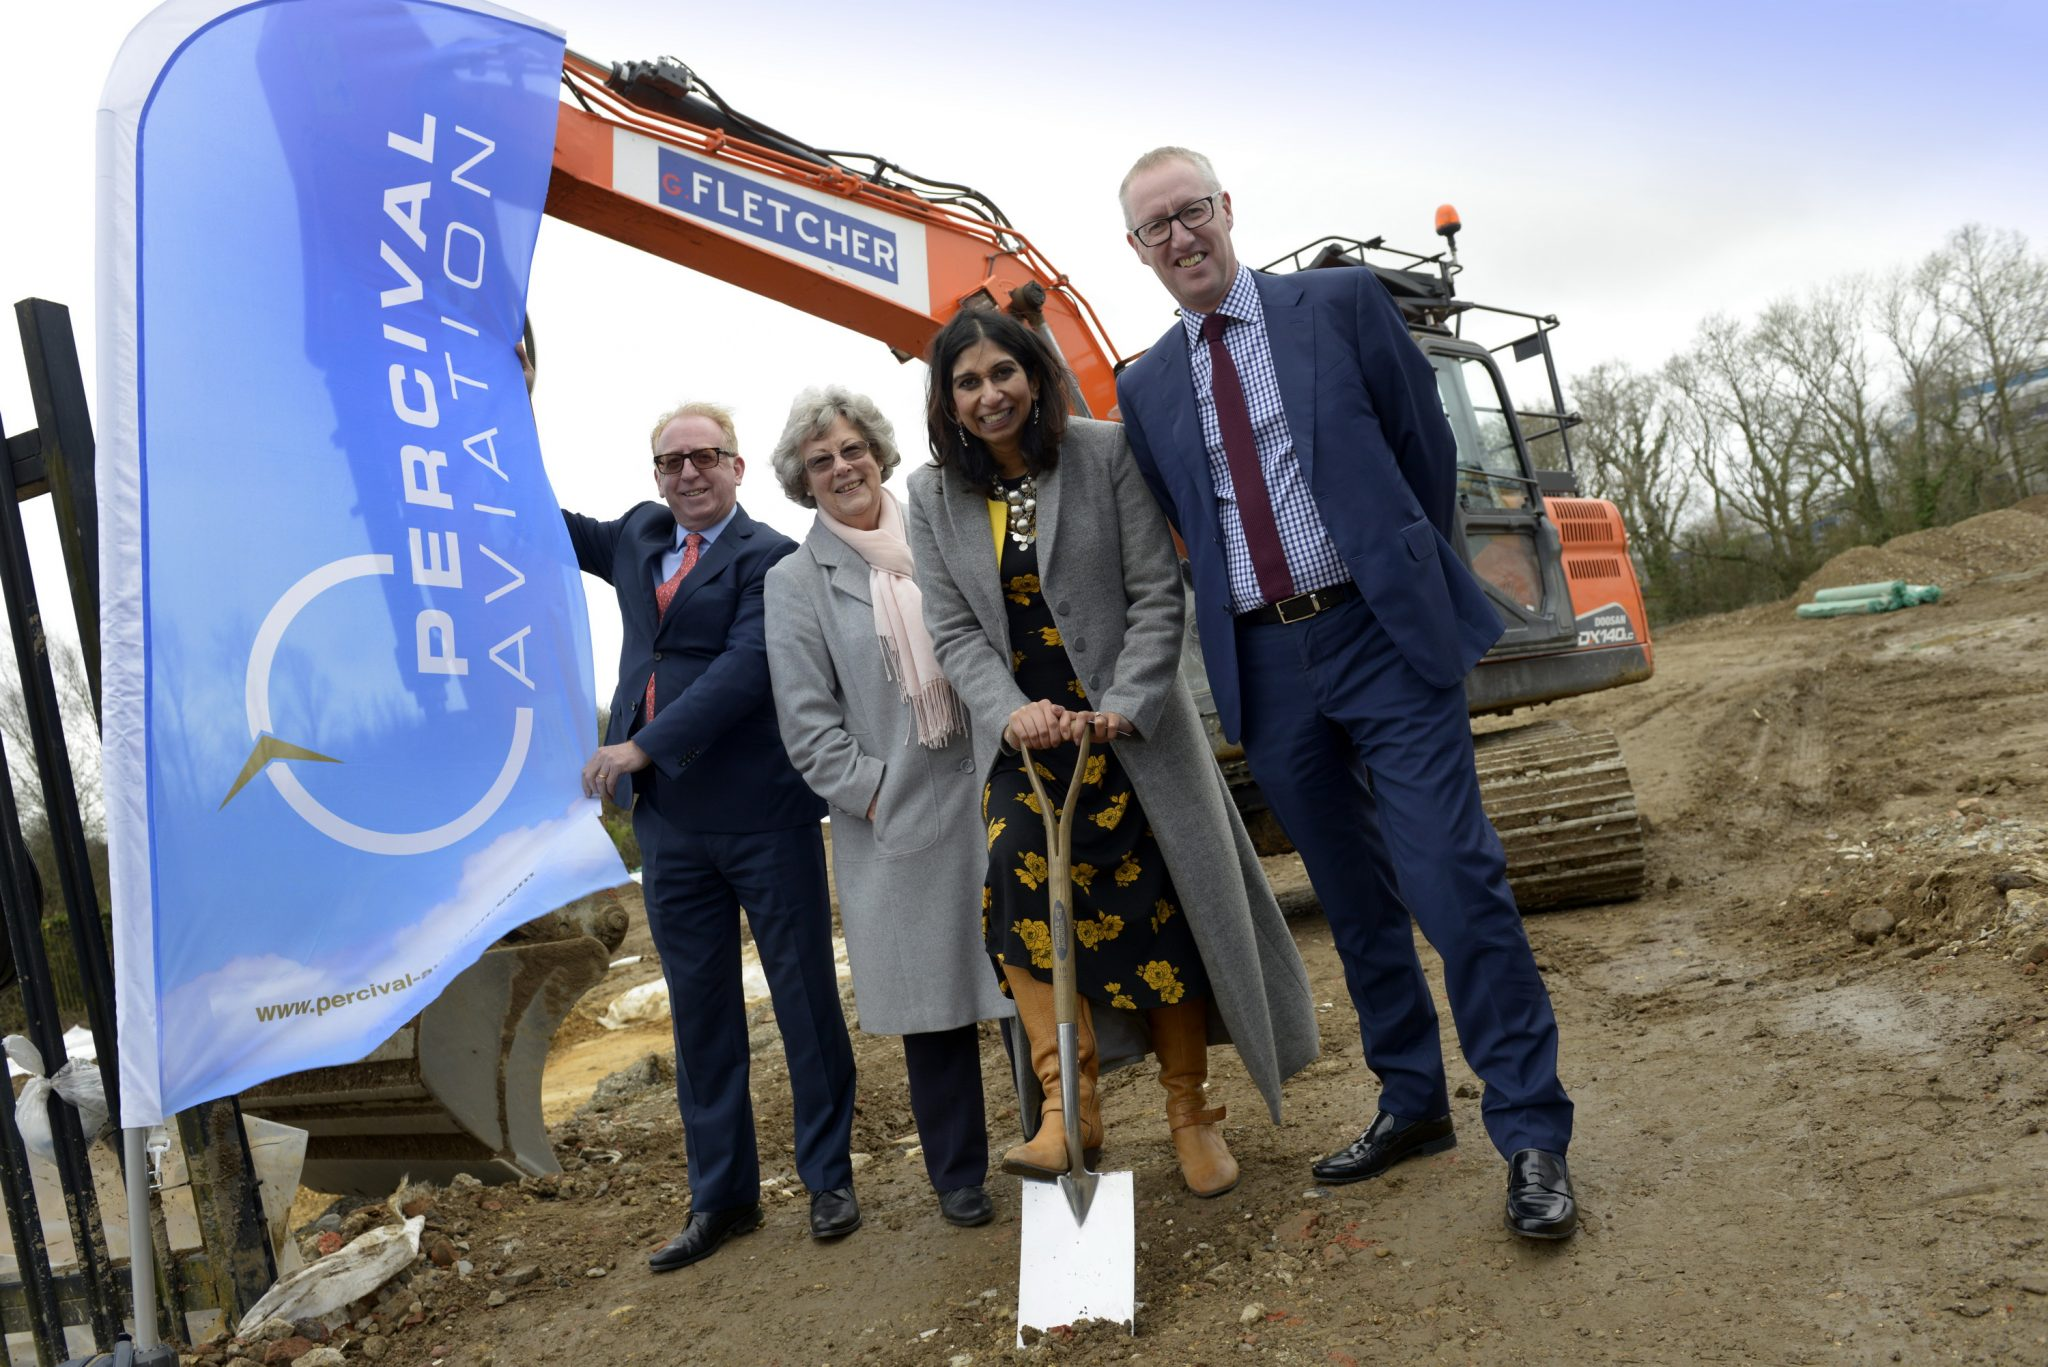 MP hails success of UK aviation industry as work begins on multi-million-pound new premises for Percival Aviation